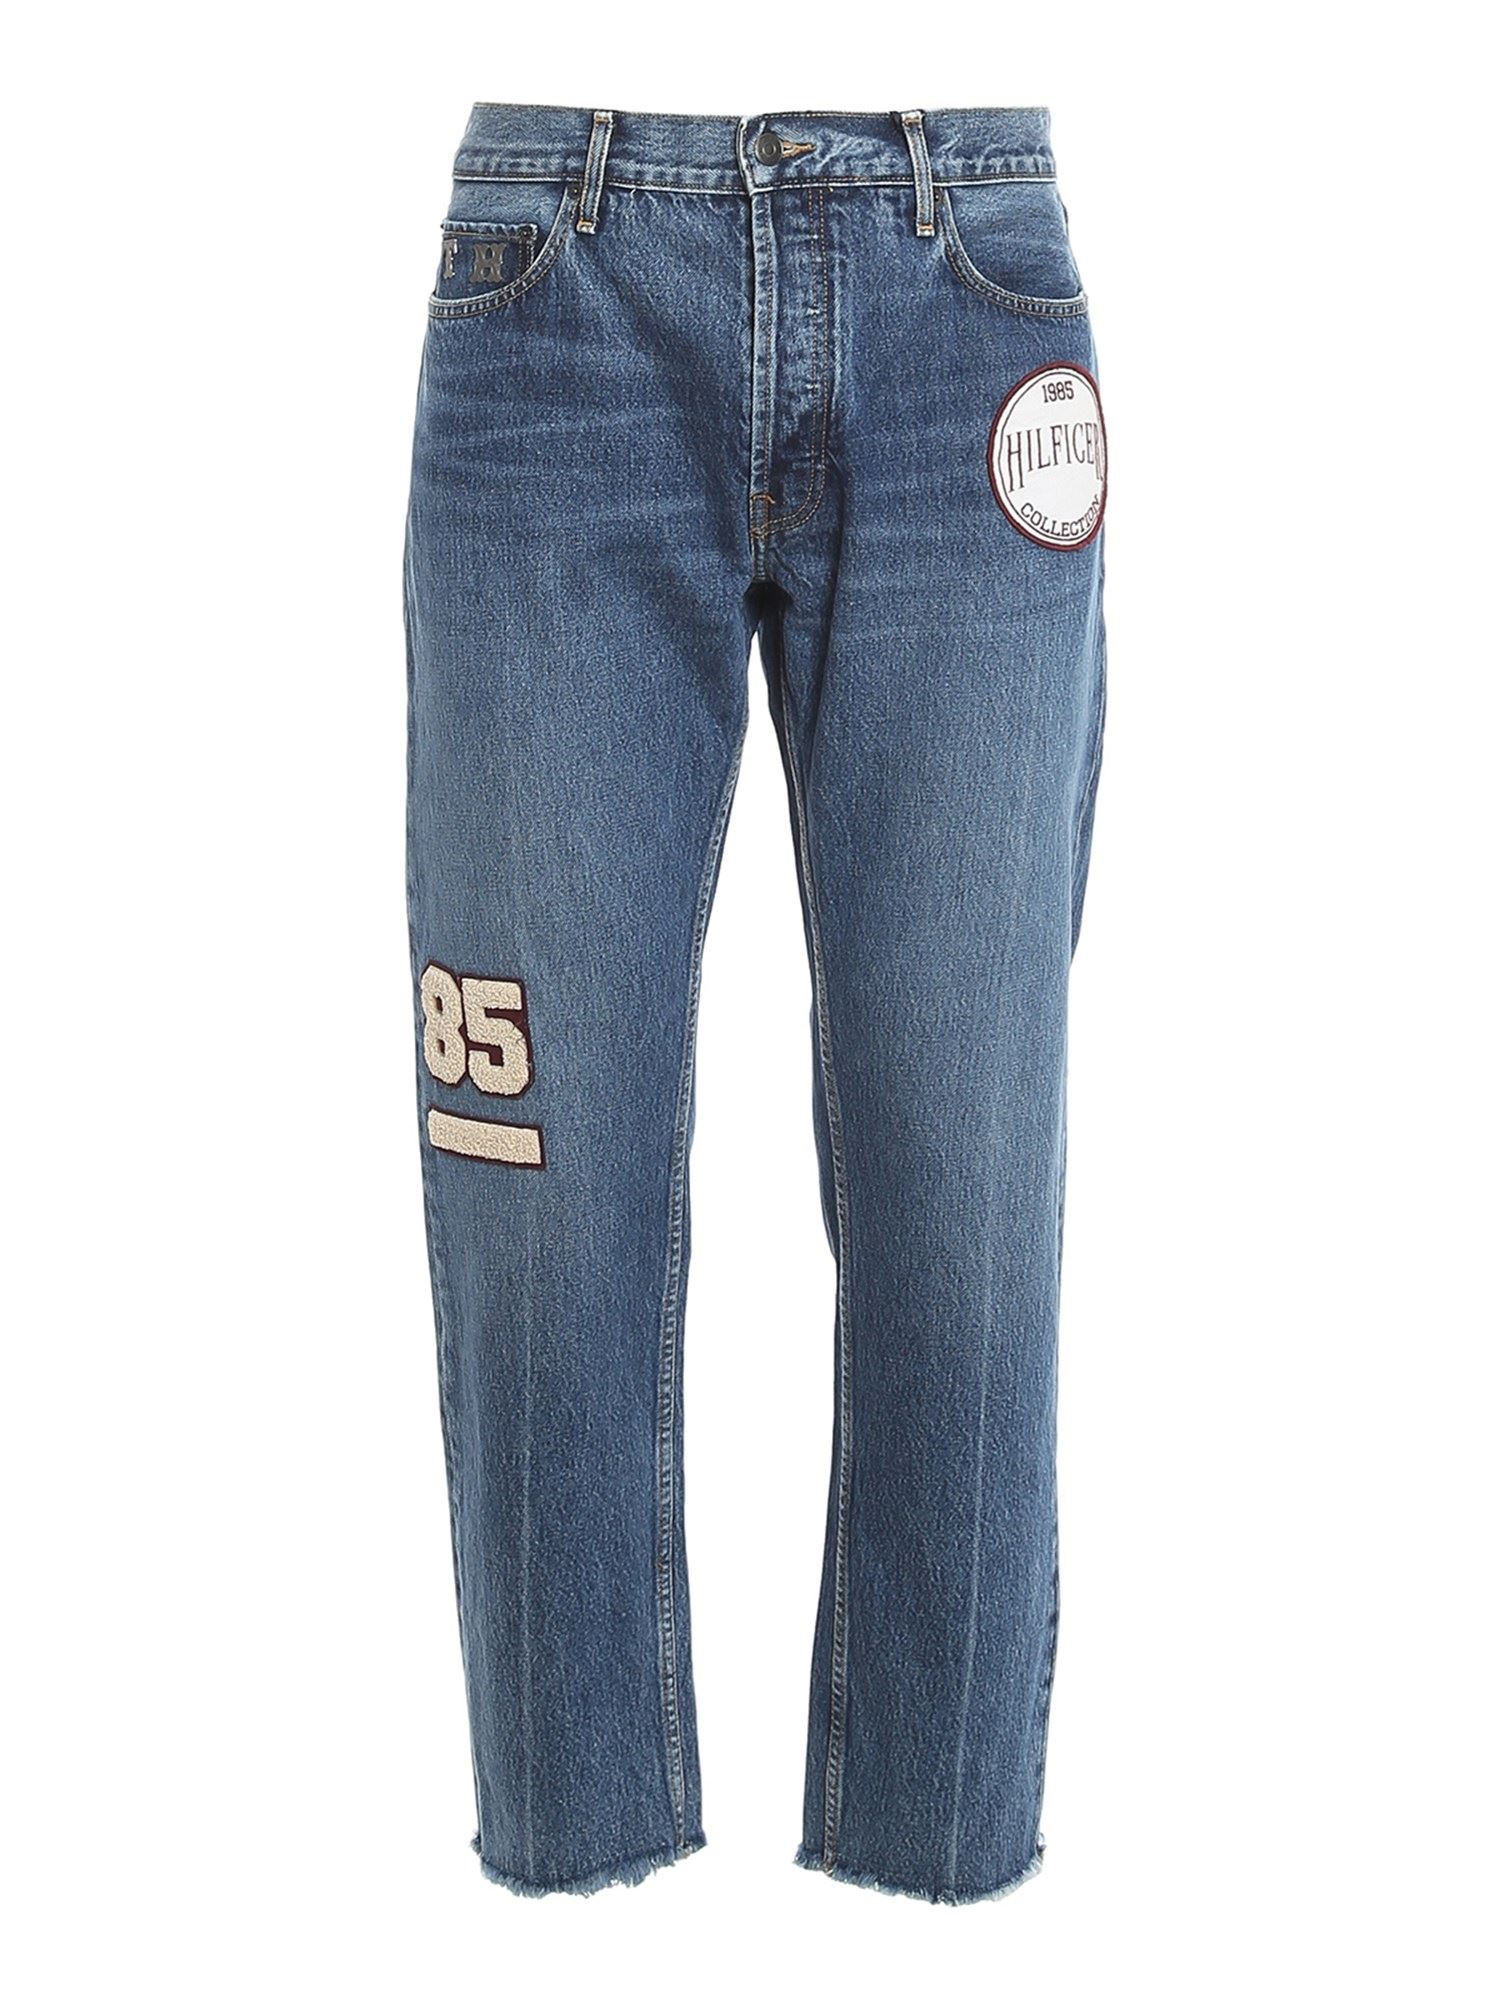 TOMMY HILFIGER EMBROIDERED PATCH CROPPED JEANS